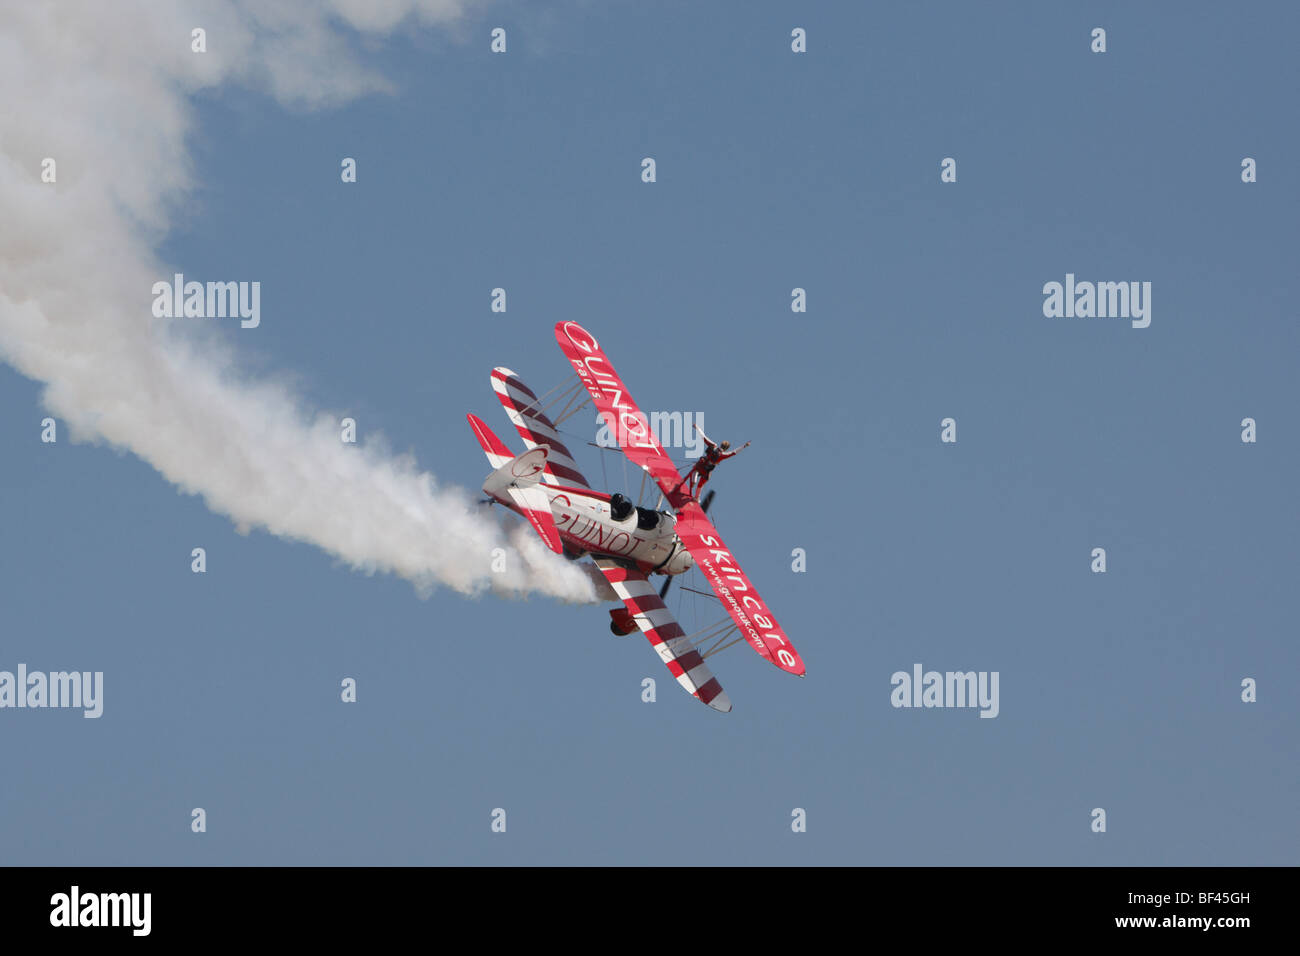 Guinot wingwalker on biplane at Clacton, Essex, England, United Kingdom - Stock Image